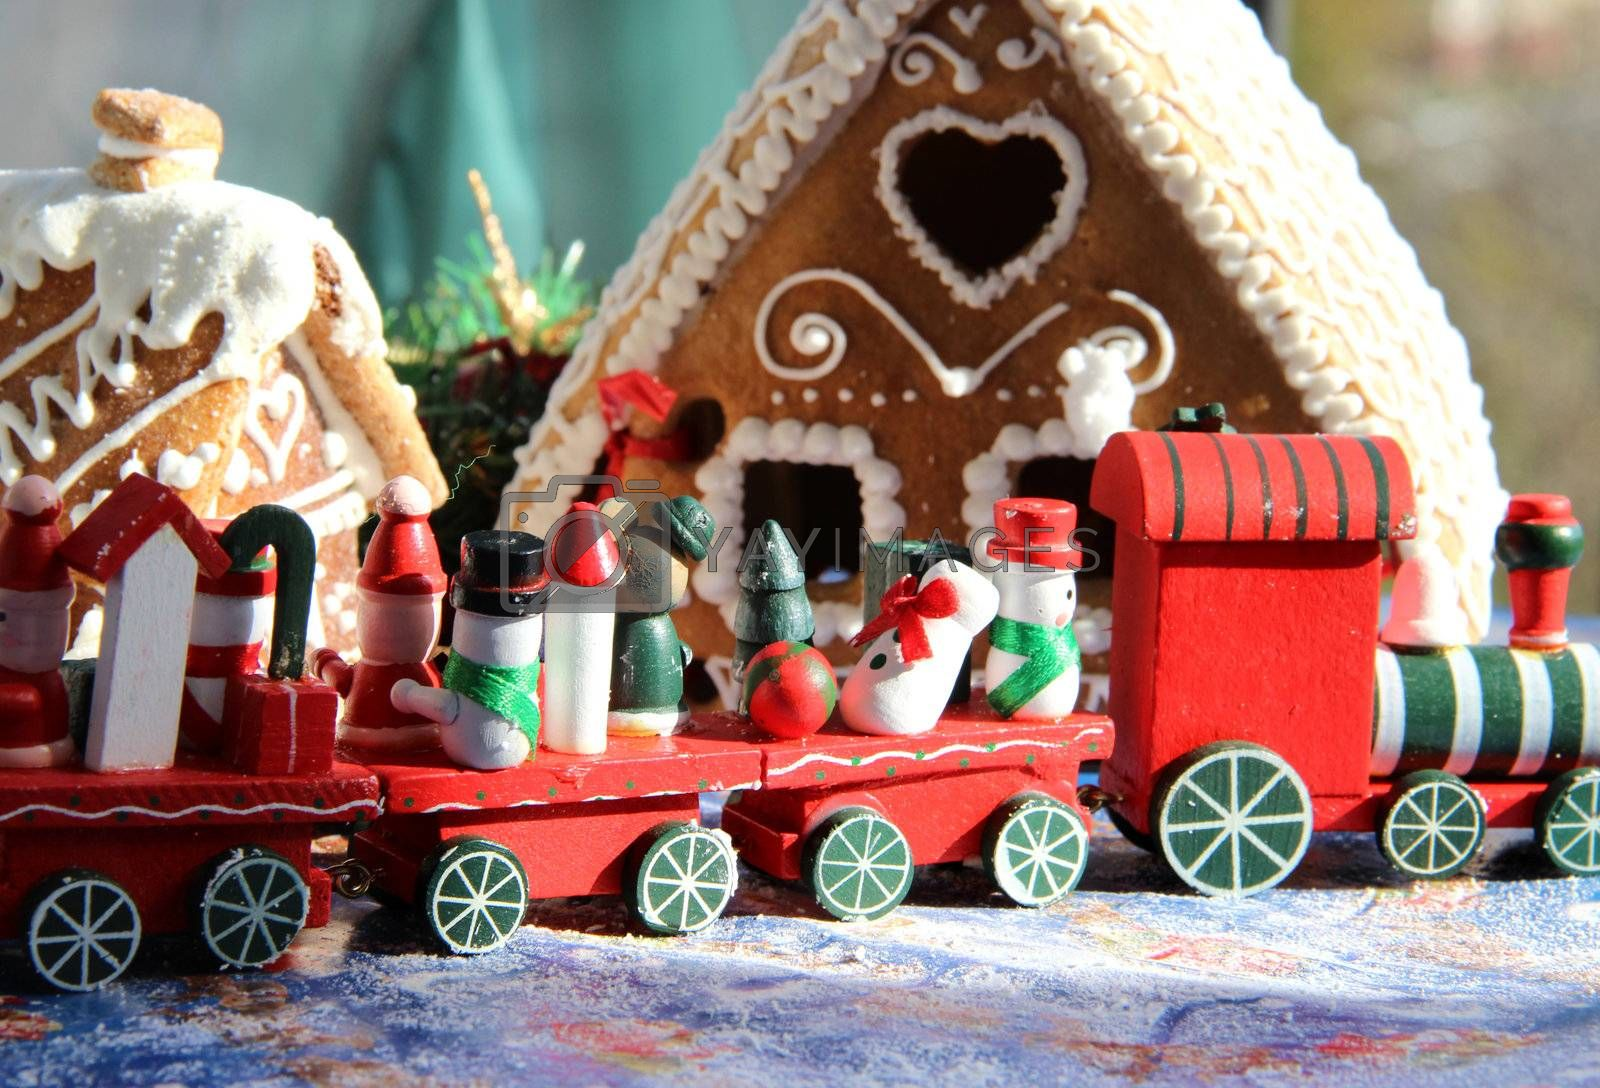 Christmas baked sweet houses and toy train with funny passengers